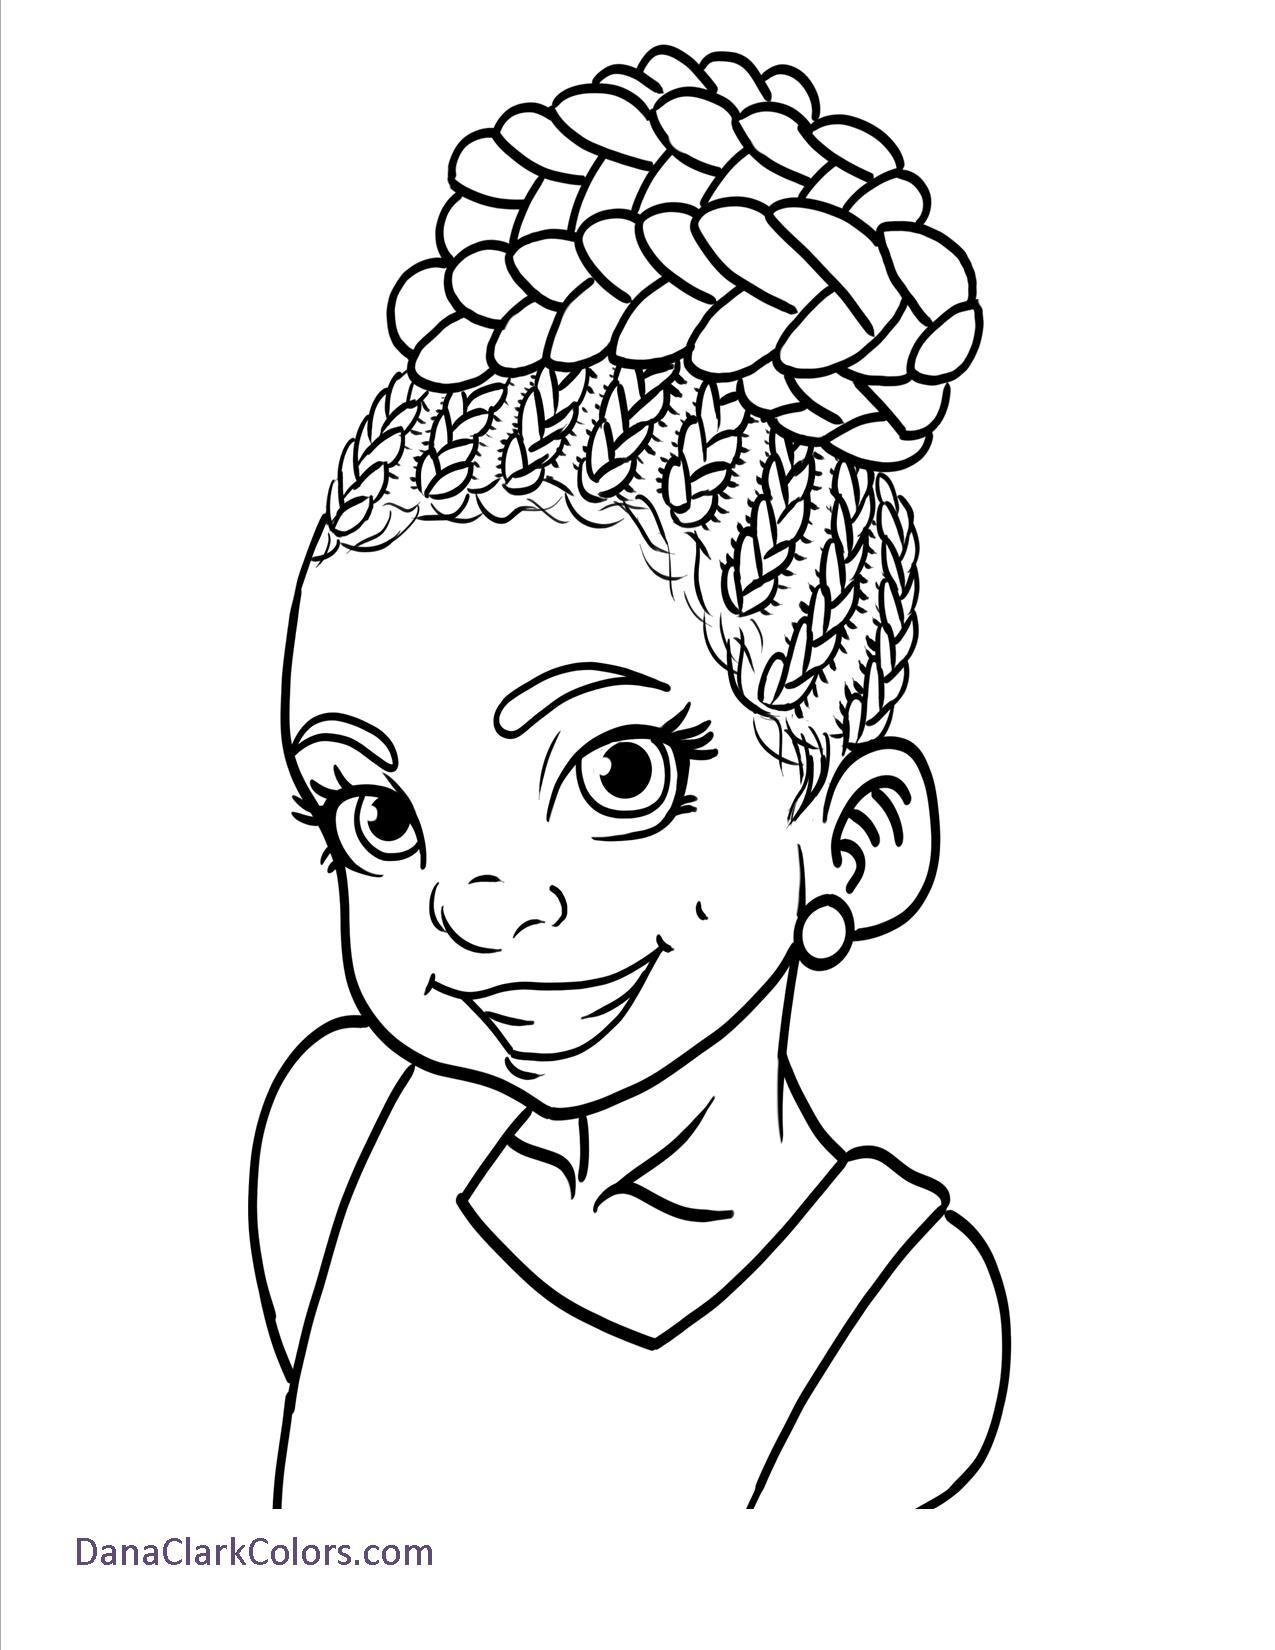 africa coloring pages to print - photo#18